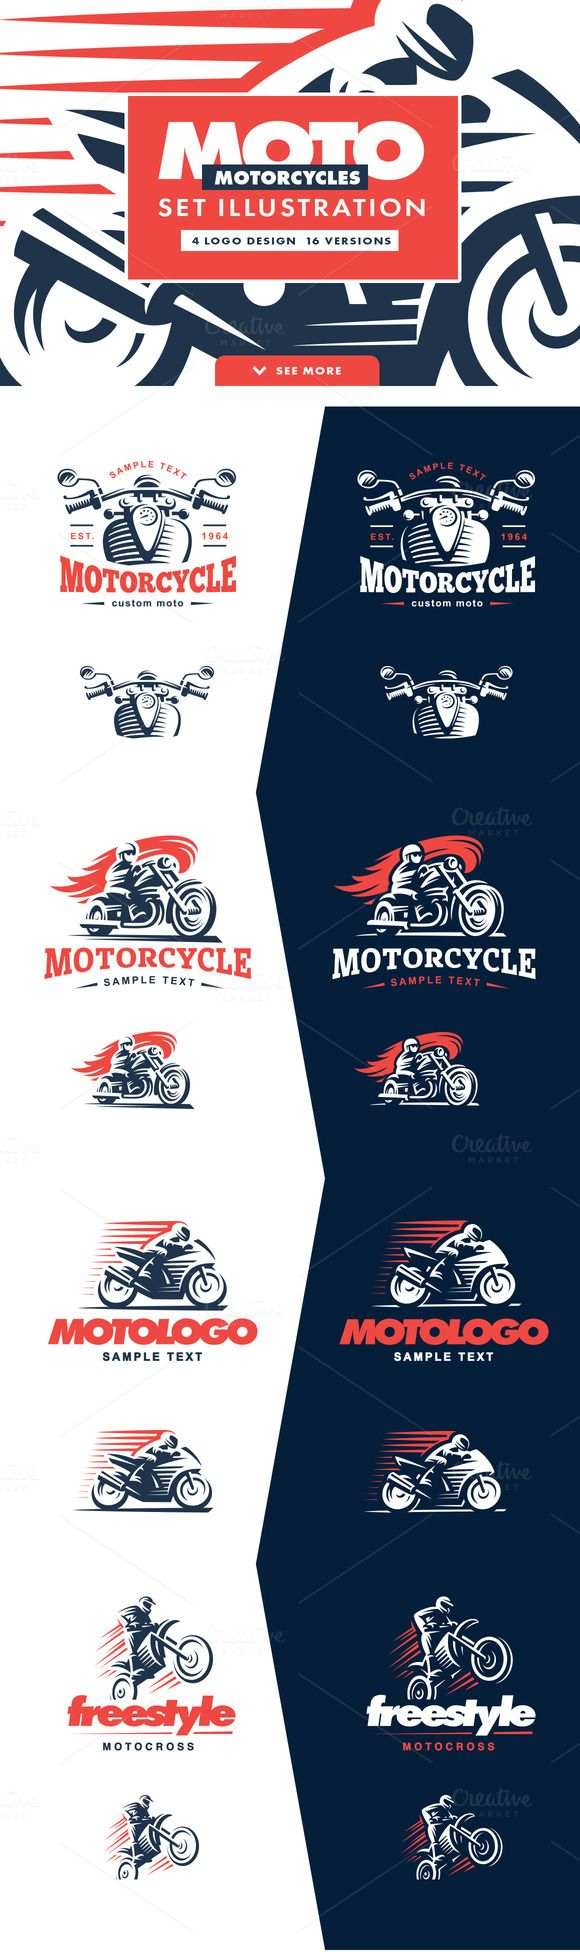 Motorcycle logo set. by SODESIGN on @creativemarket